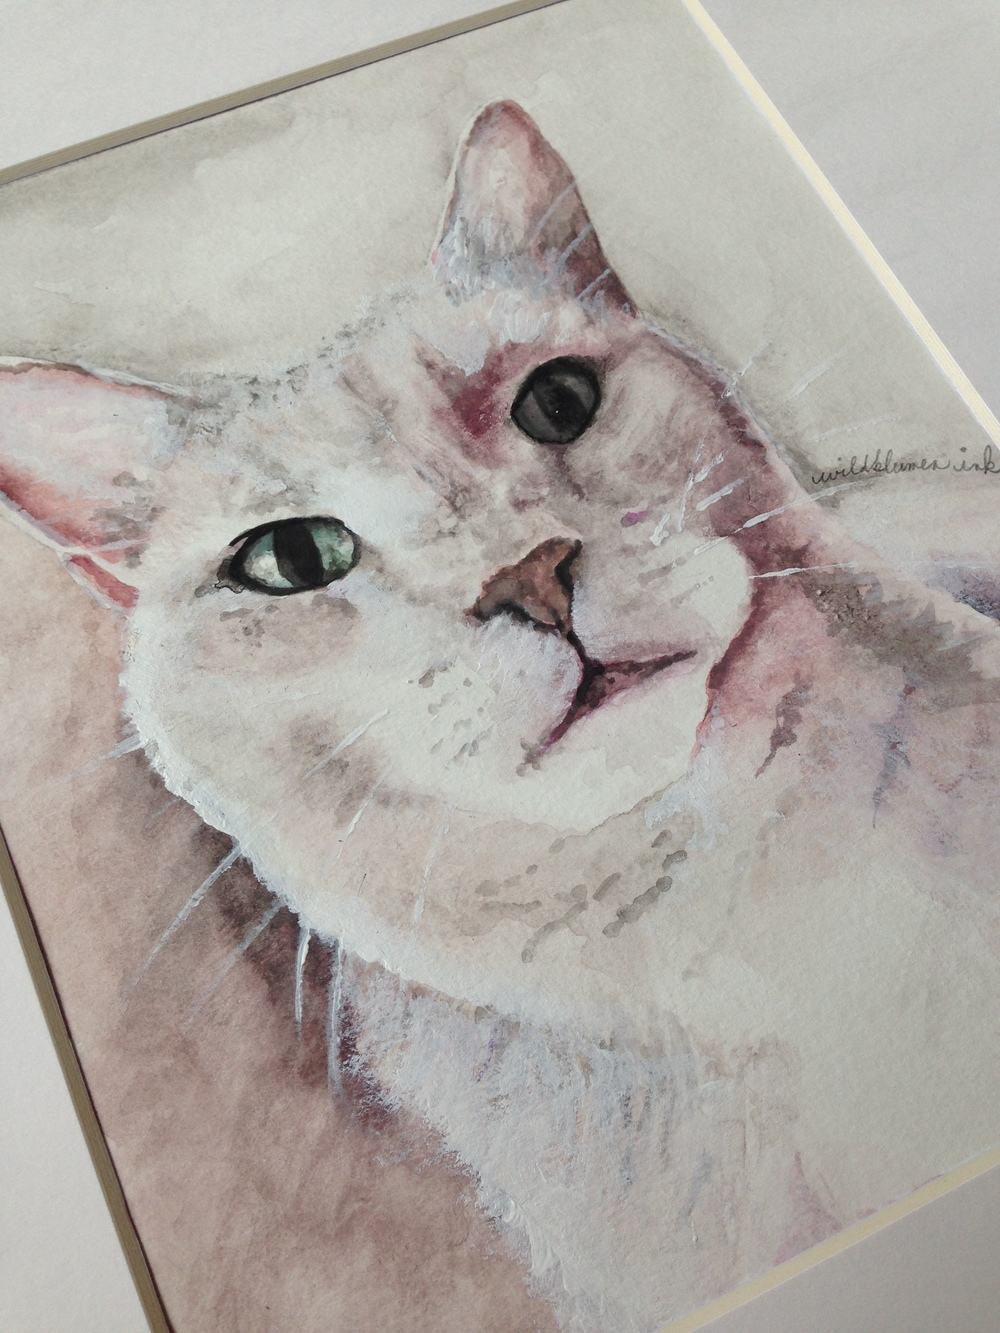 cat2.wildblumenink.jpg